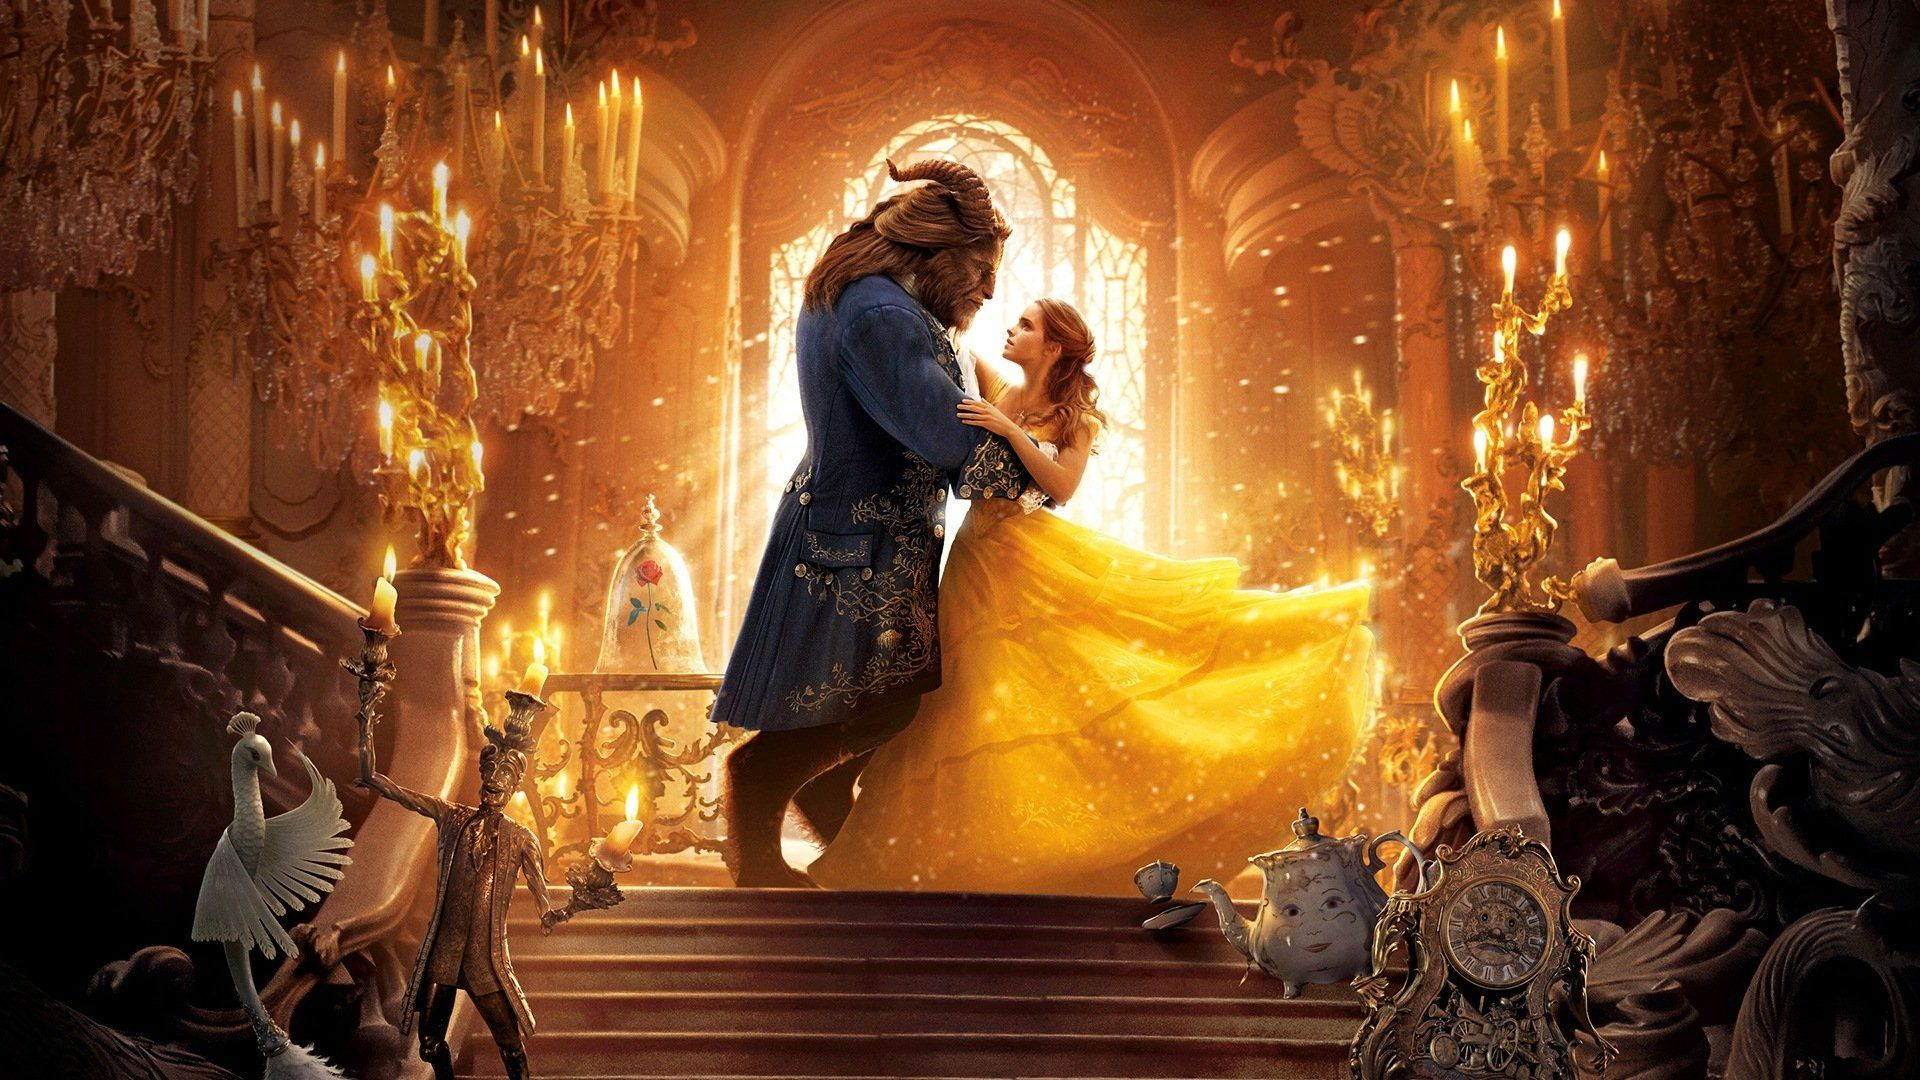 beauty and the beast wallpapers top free beauty and the beast backgrounds wallpaperaccess beauty and the beast wallpapers top